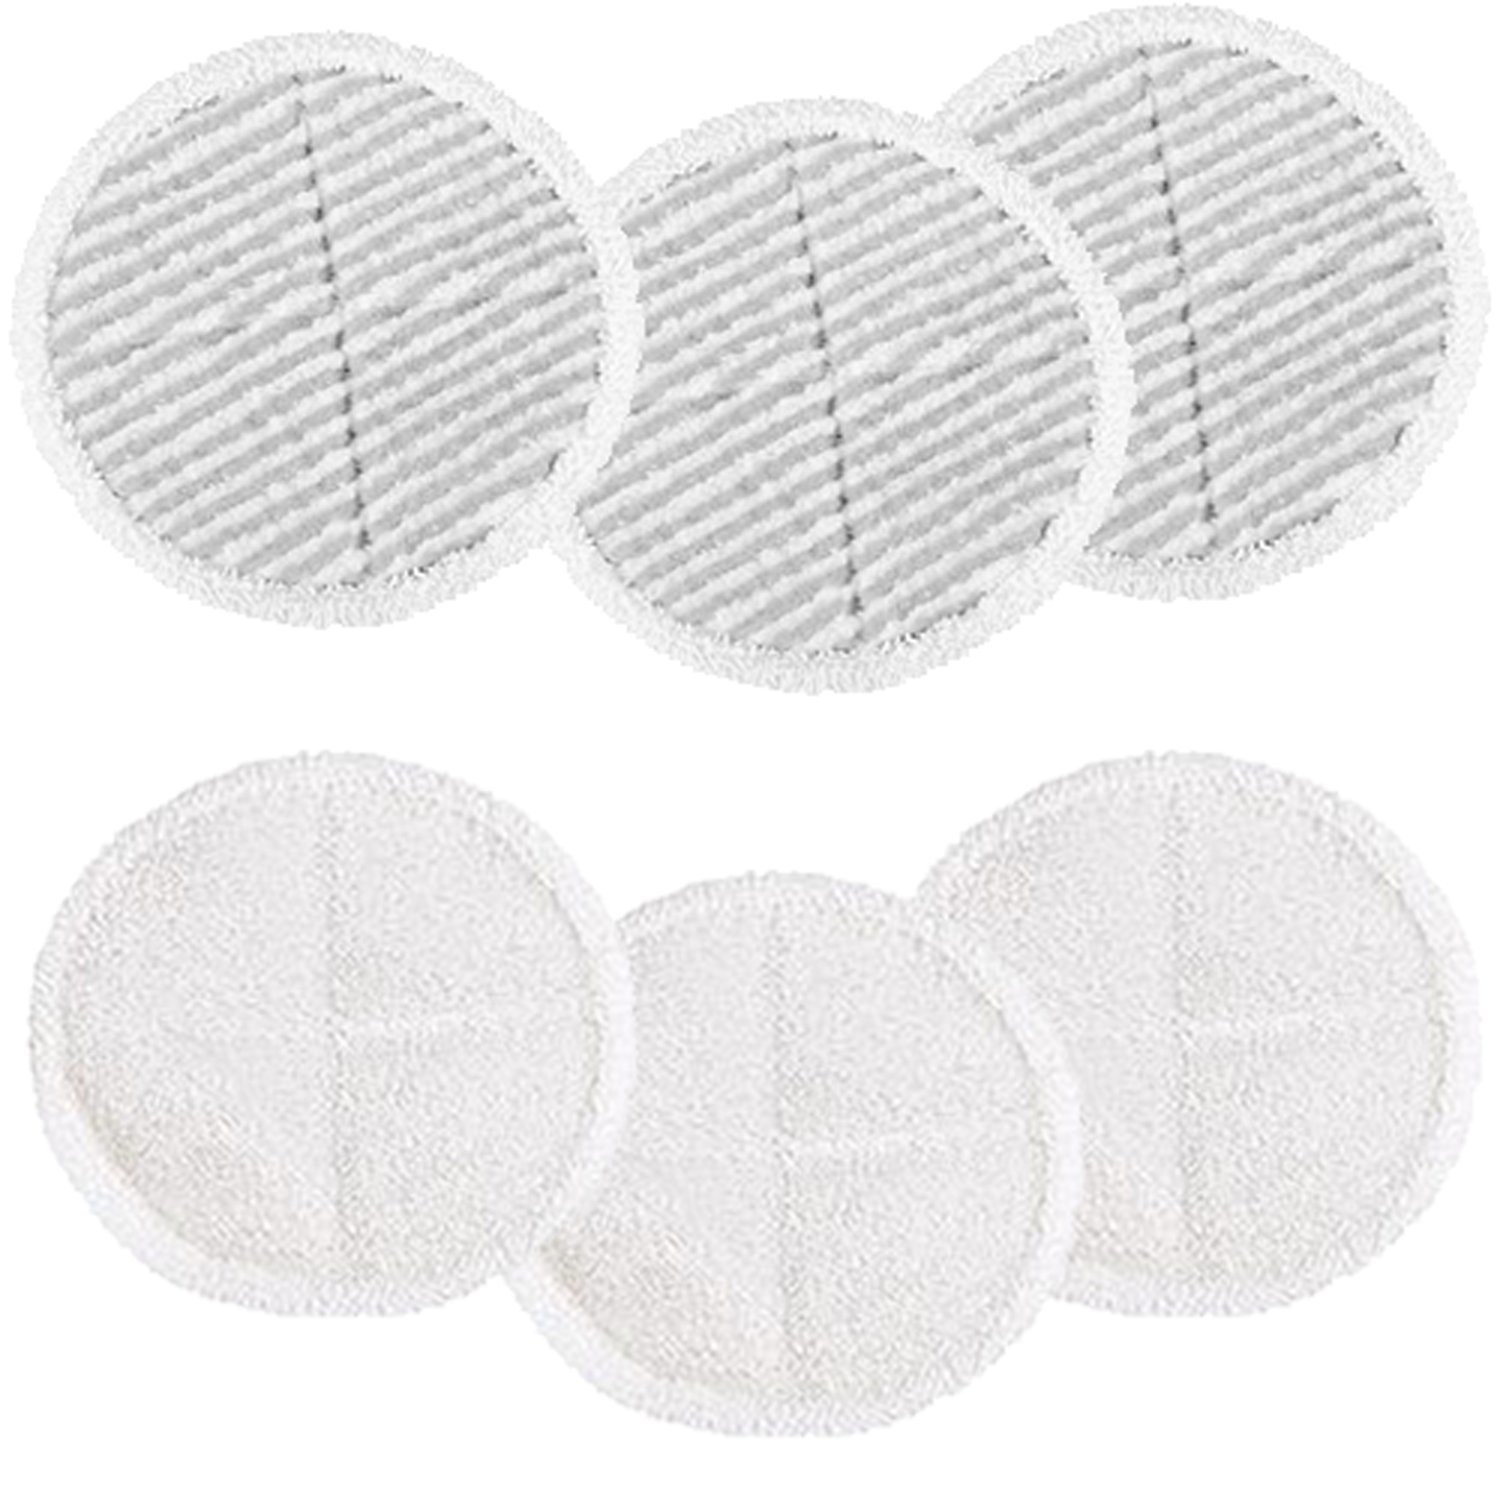 Amyehouse 6 Pack Replacement Pads Compatible for Bissell Spinwave 2039A 2124 2307 Steam Mop (Included 3 Soft Pads+3 Scrubby Pads) by Amyehouse